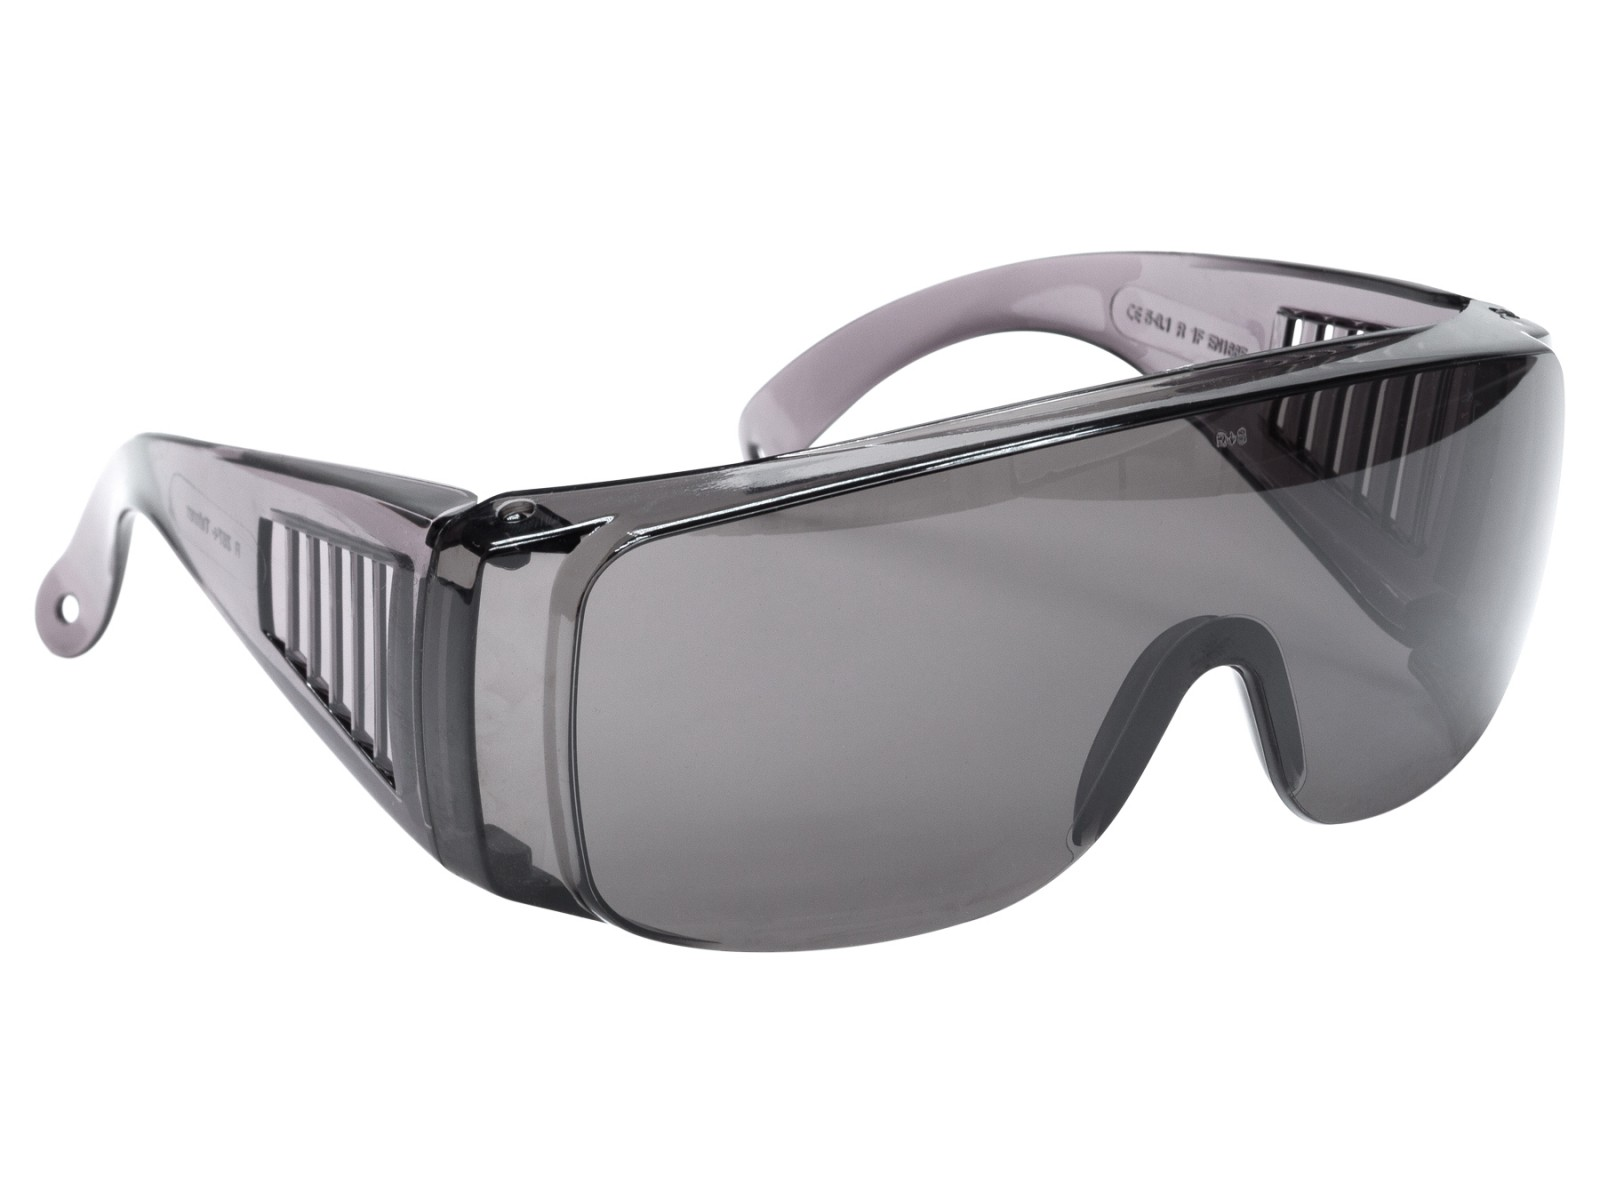 Radians Coveralls Safety Glasses, Smoke